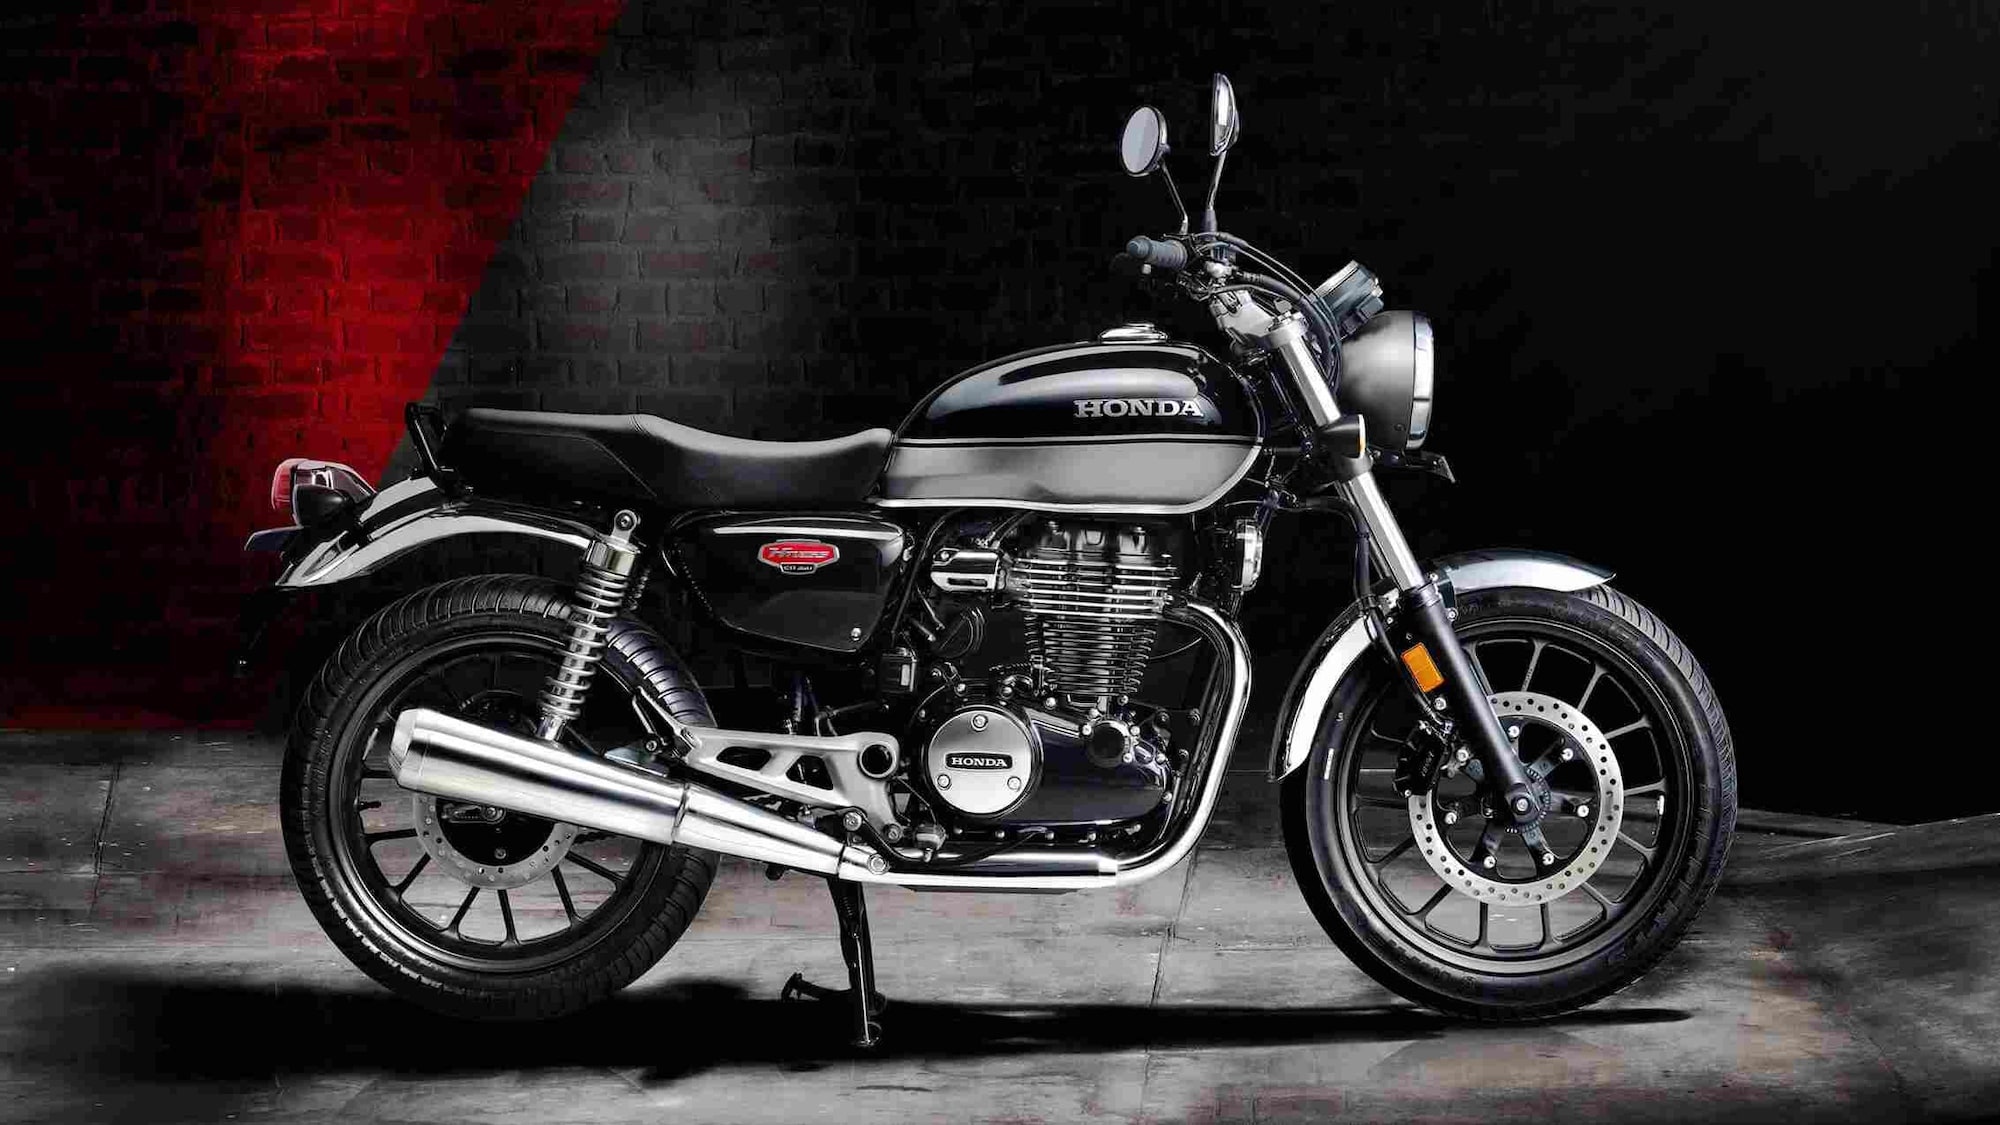 Honda H'ness CB 350 recalled in India to address potential transmission defect- Technology News, Gadgetclock